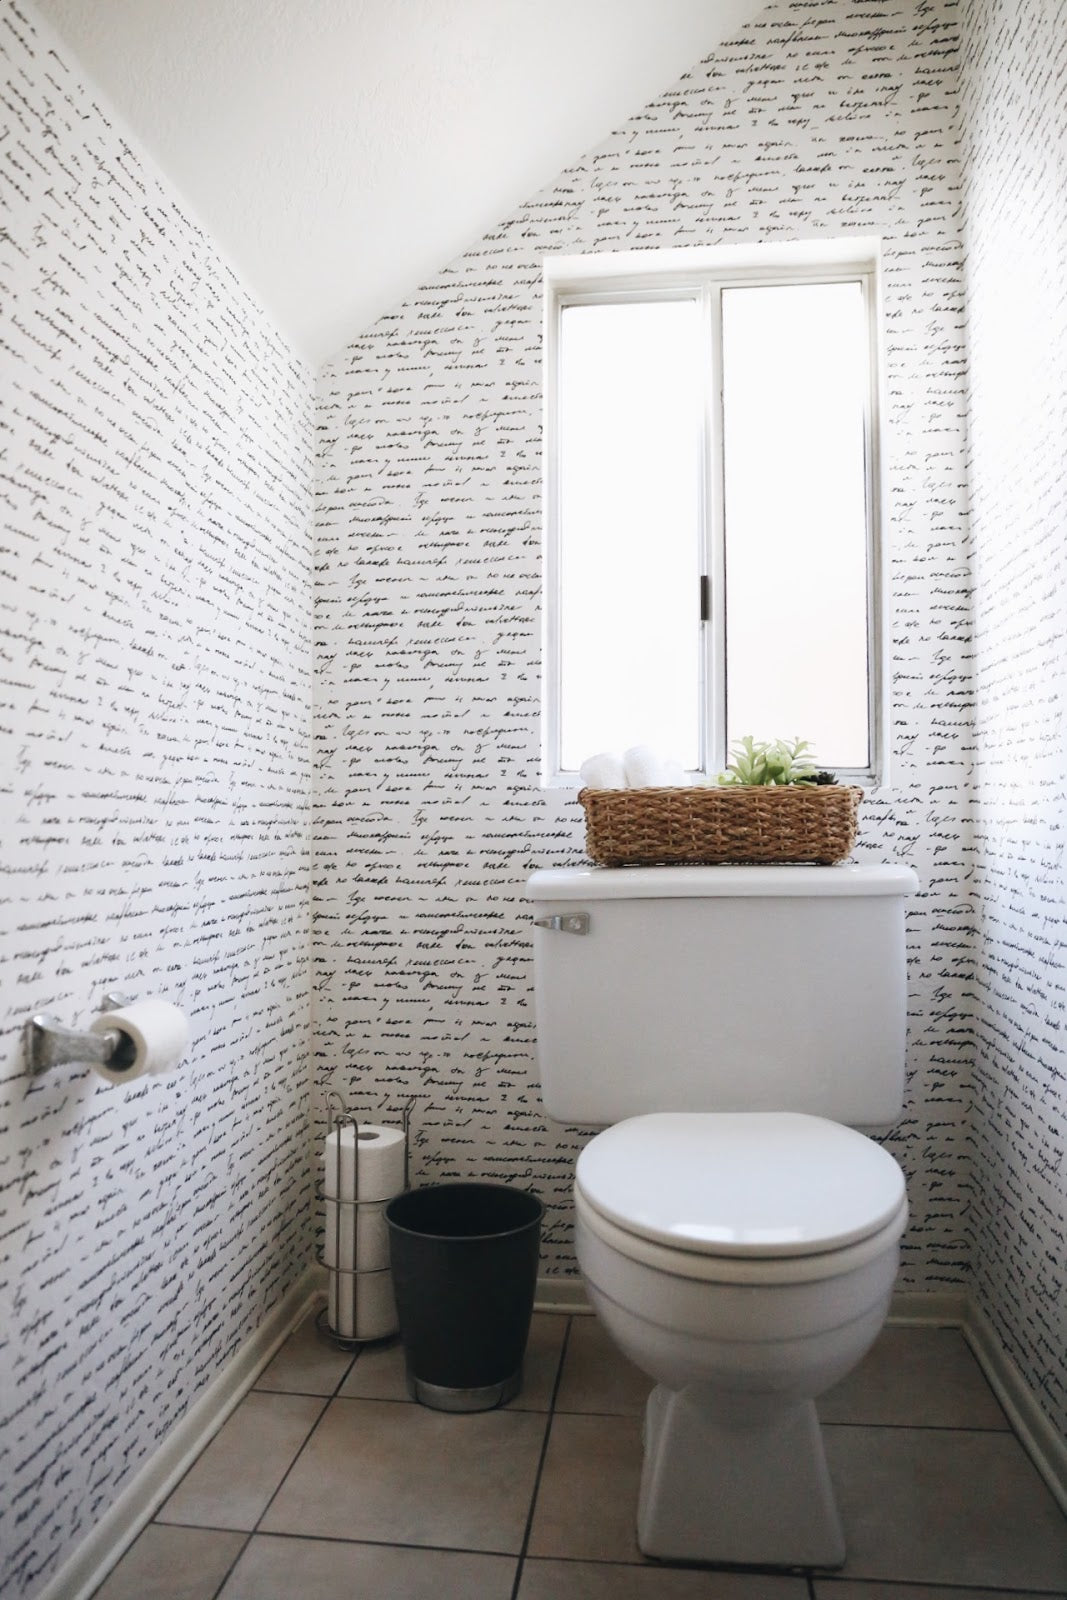 Powder room transformation using removable wallpaper from WallsNeedLove | Merrick's Art